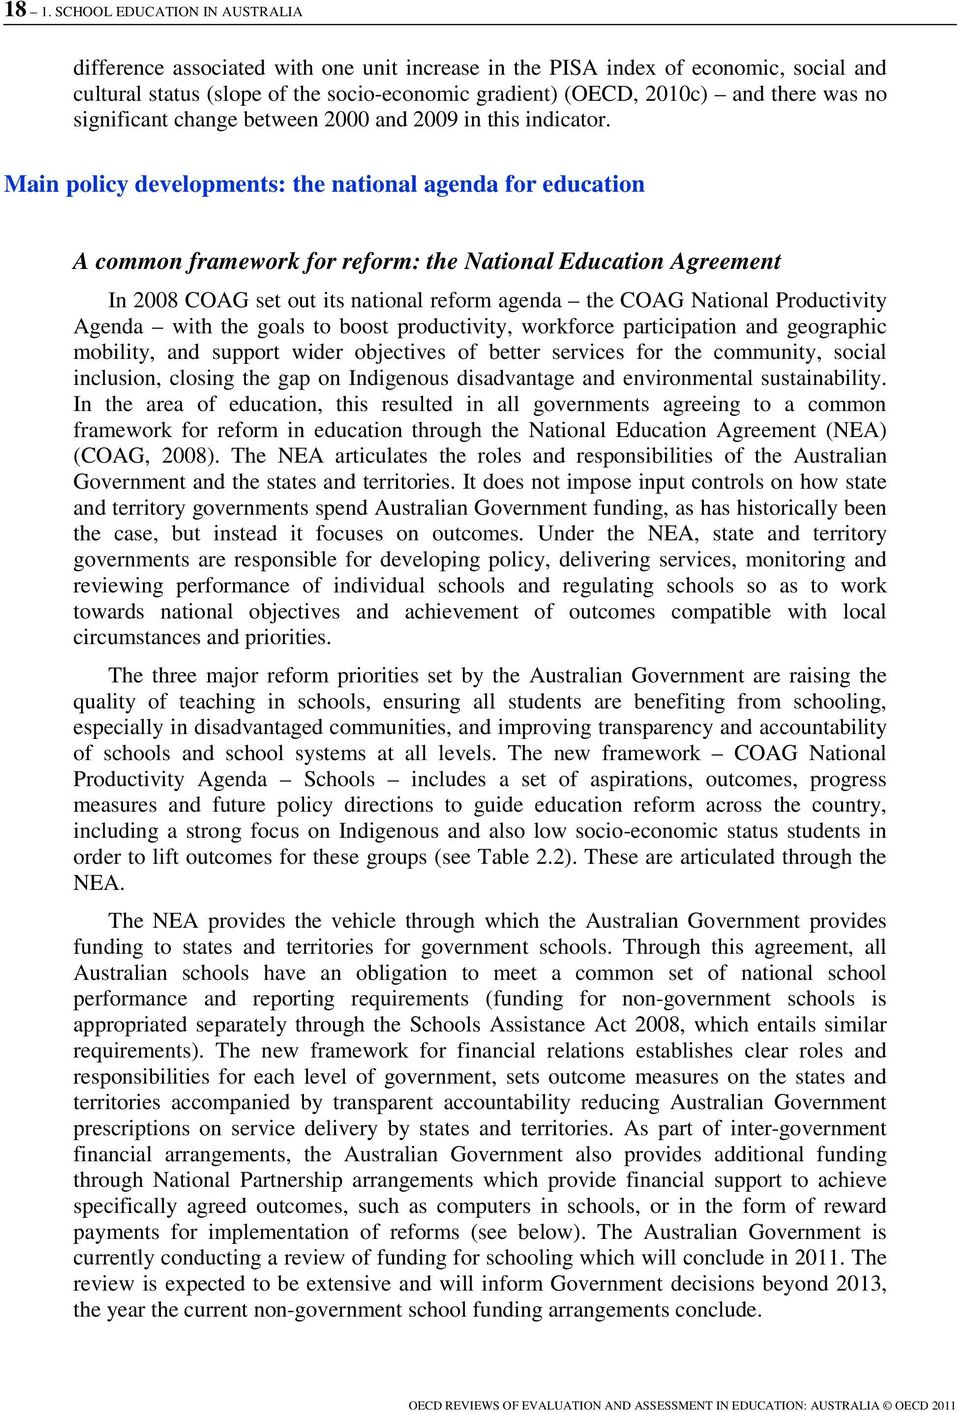 Main policy developments: the national agenda for education A common framework for reform: the National Education Agreement In 2008 COAG set out its national reform agenda the COAG National